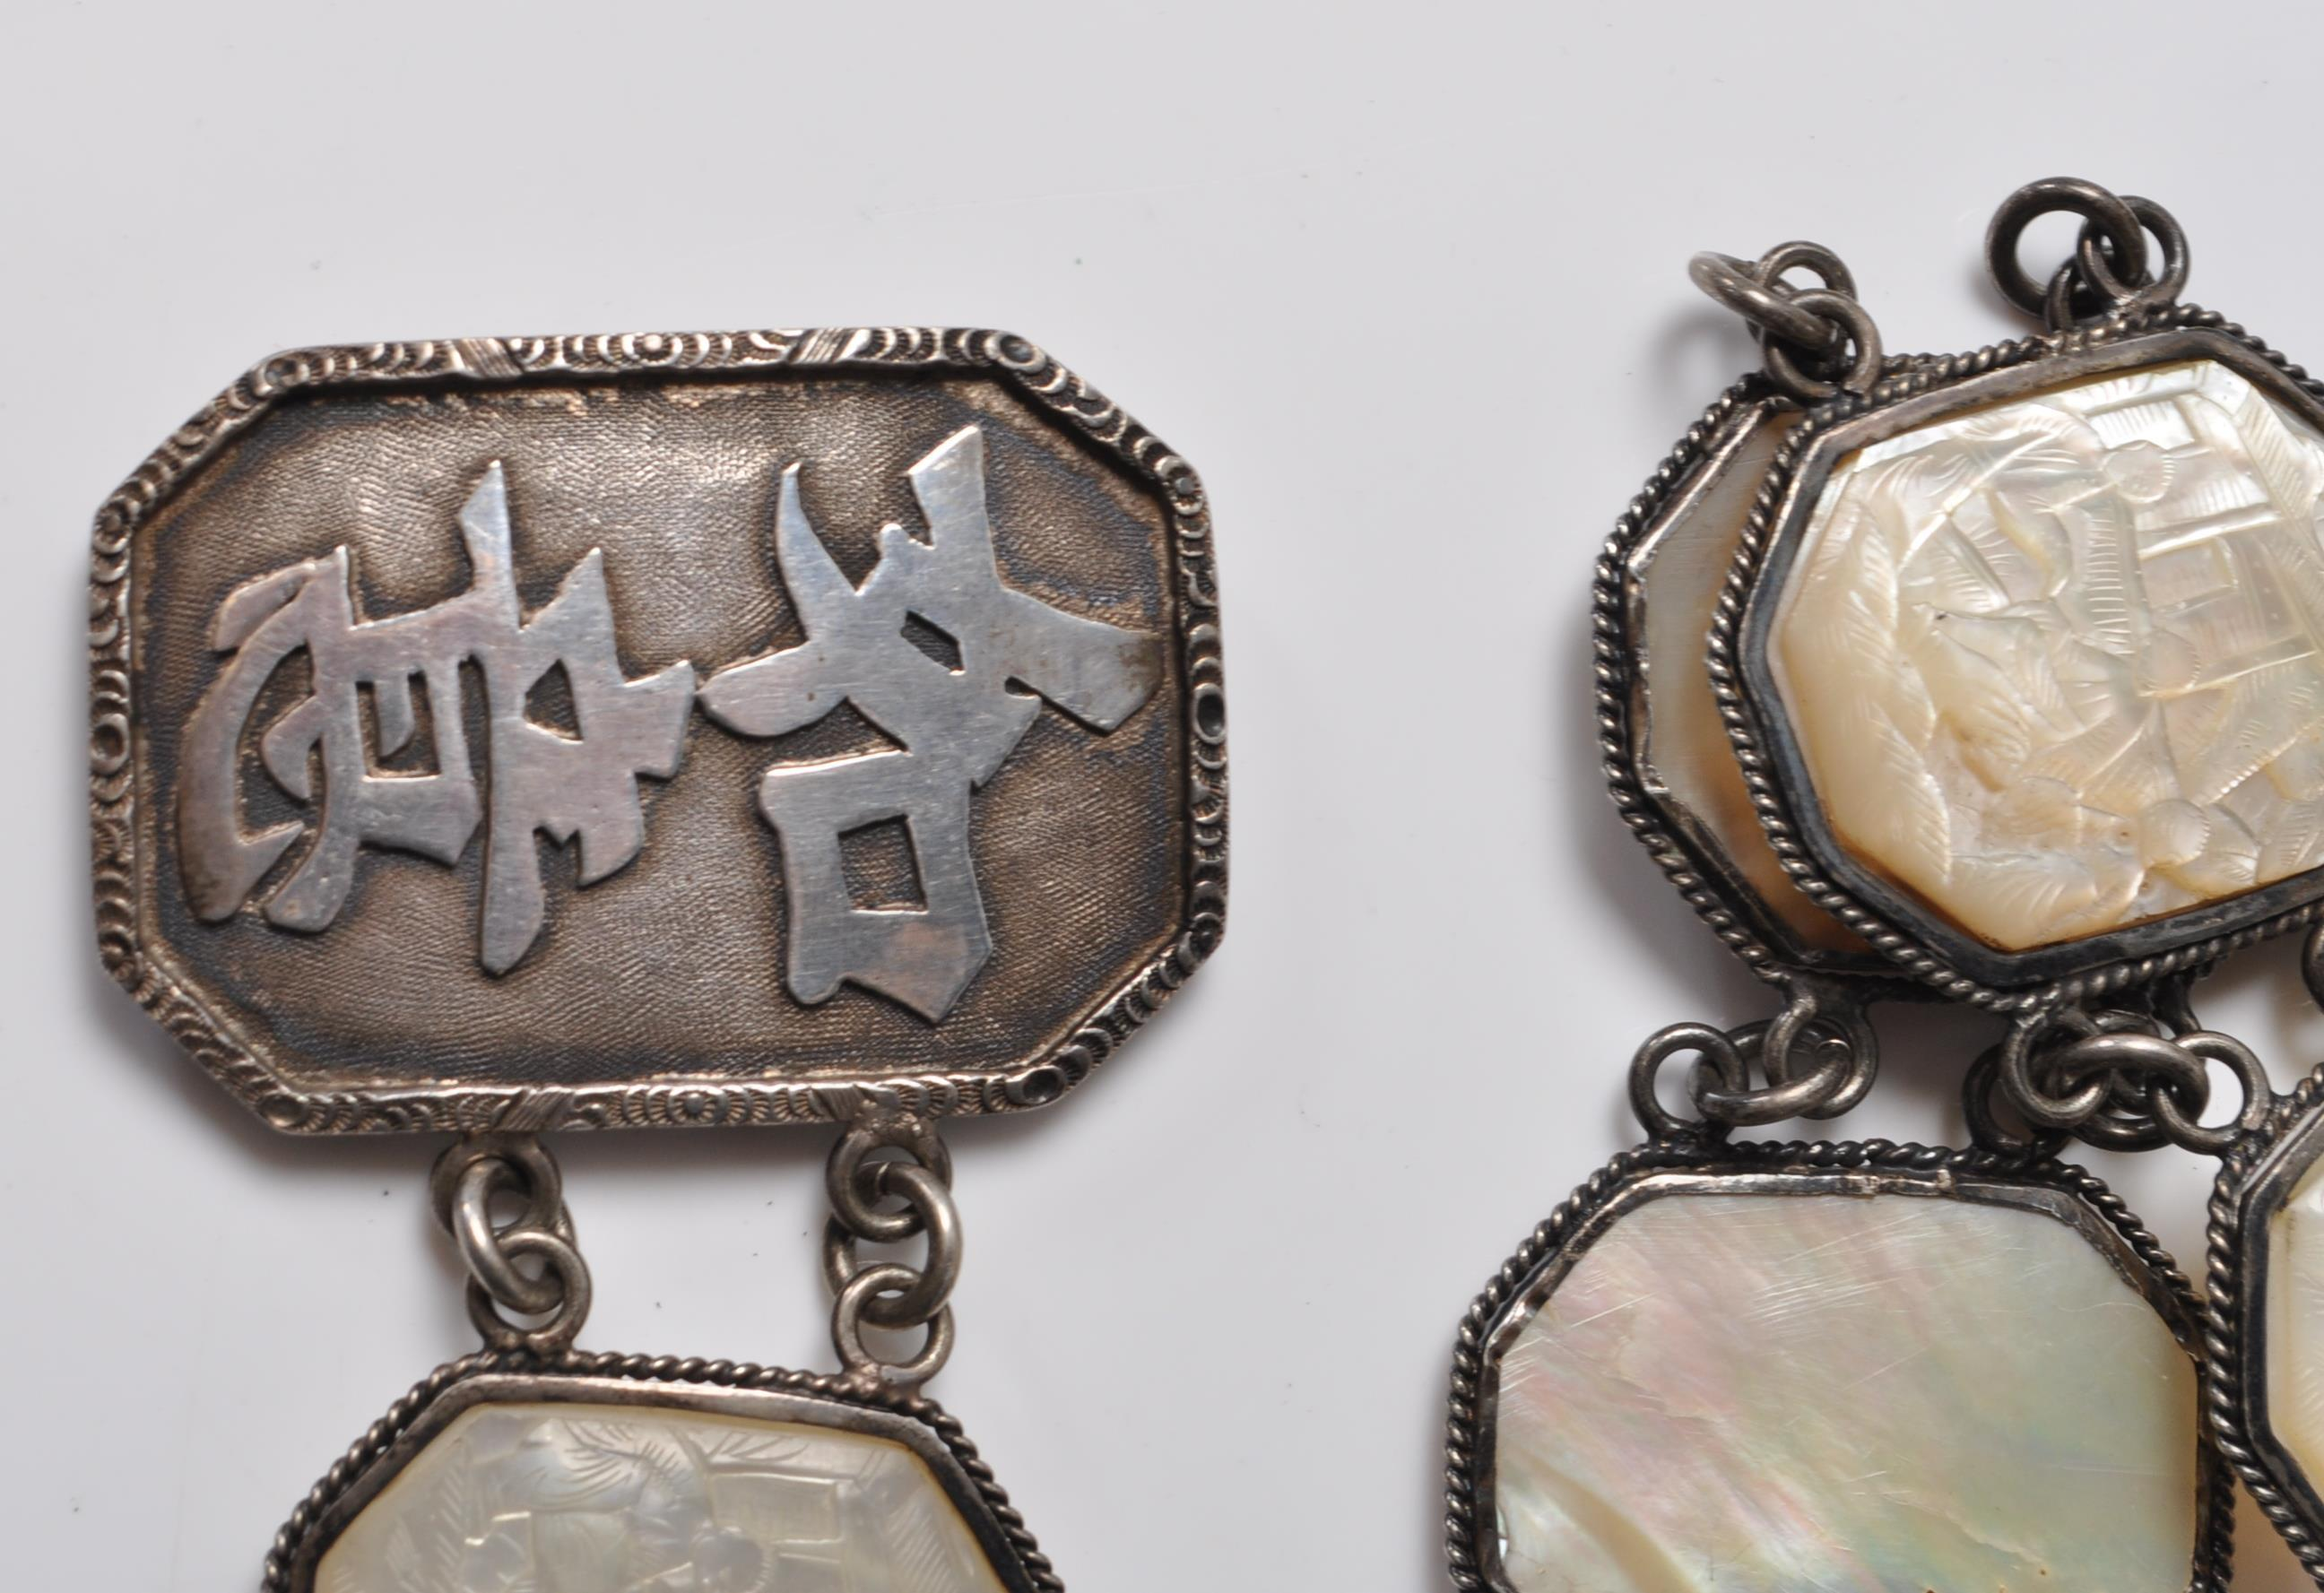 ANTIQUE CHINESE SILVER AND MOTHER OF PEARL BELT - Image 2 of 7